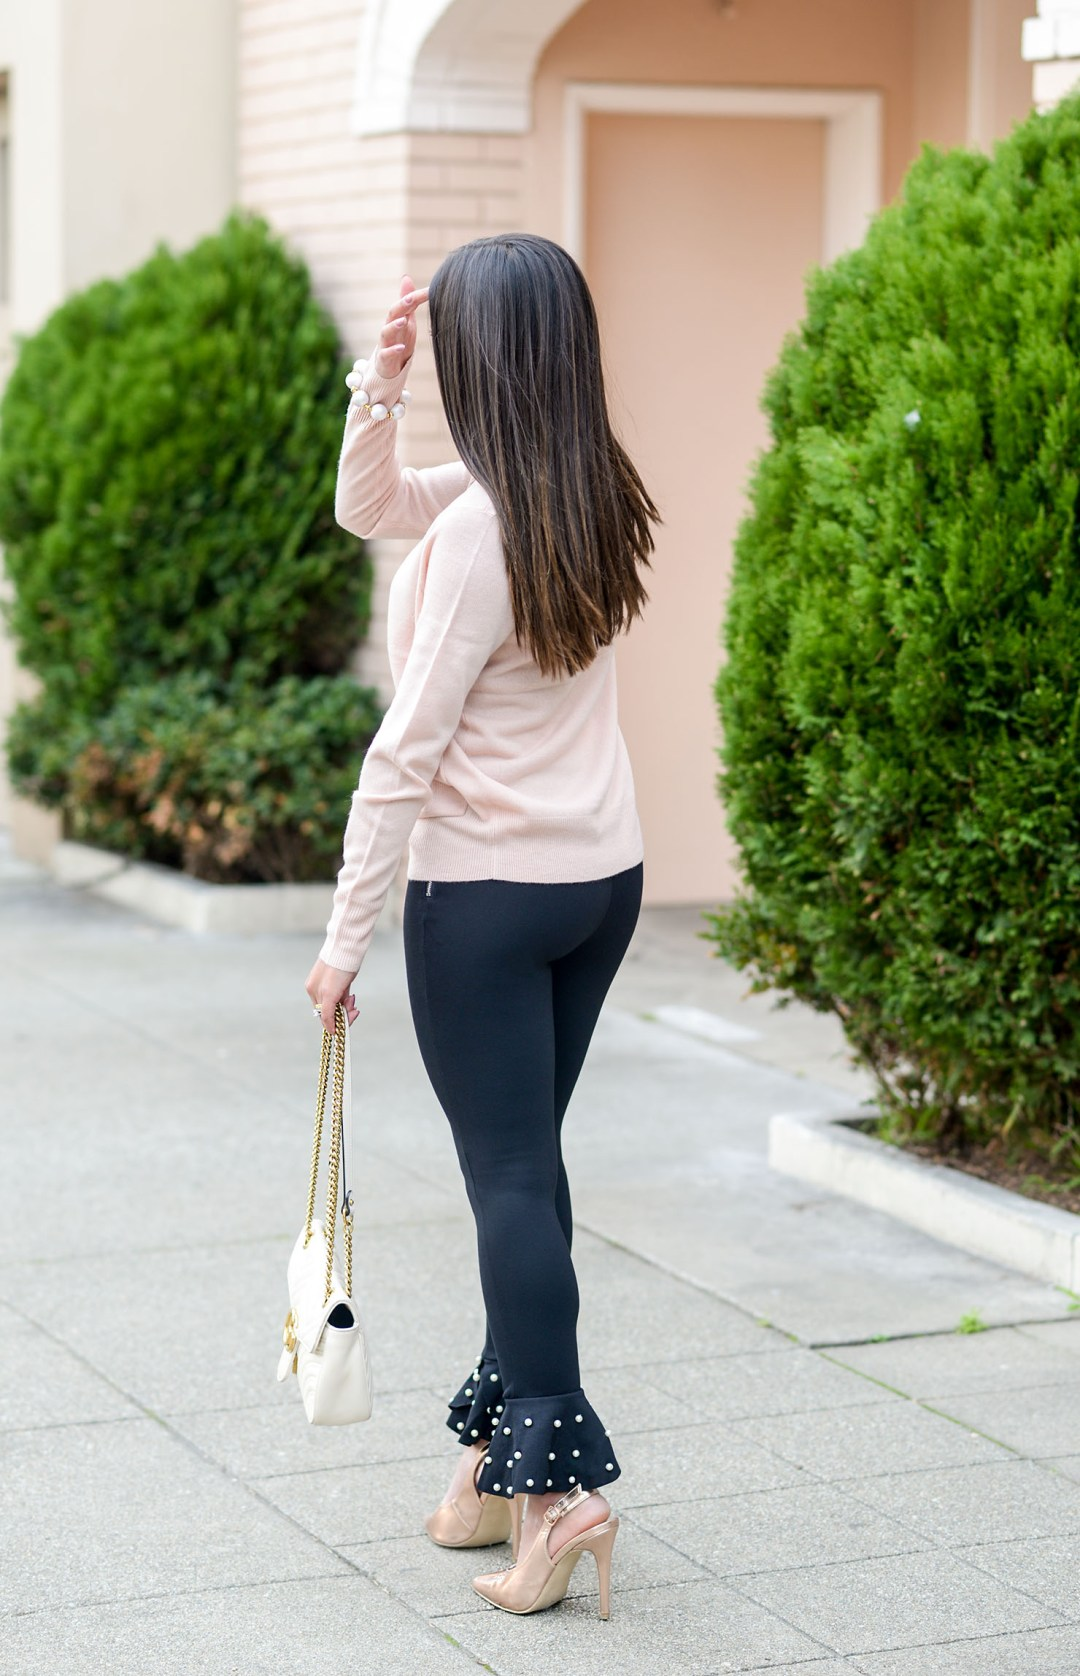 Lifestyle blogger Kelsey Kaplan of Kelsey Kaplan Fashion wearing pearl hem pants and white gucci purse